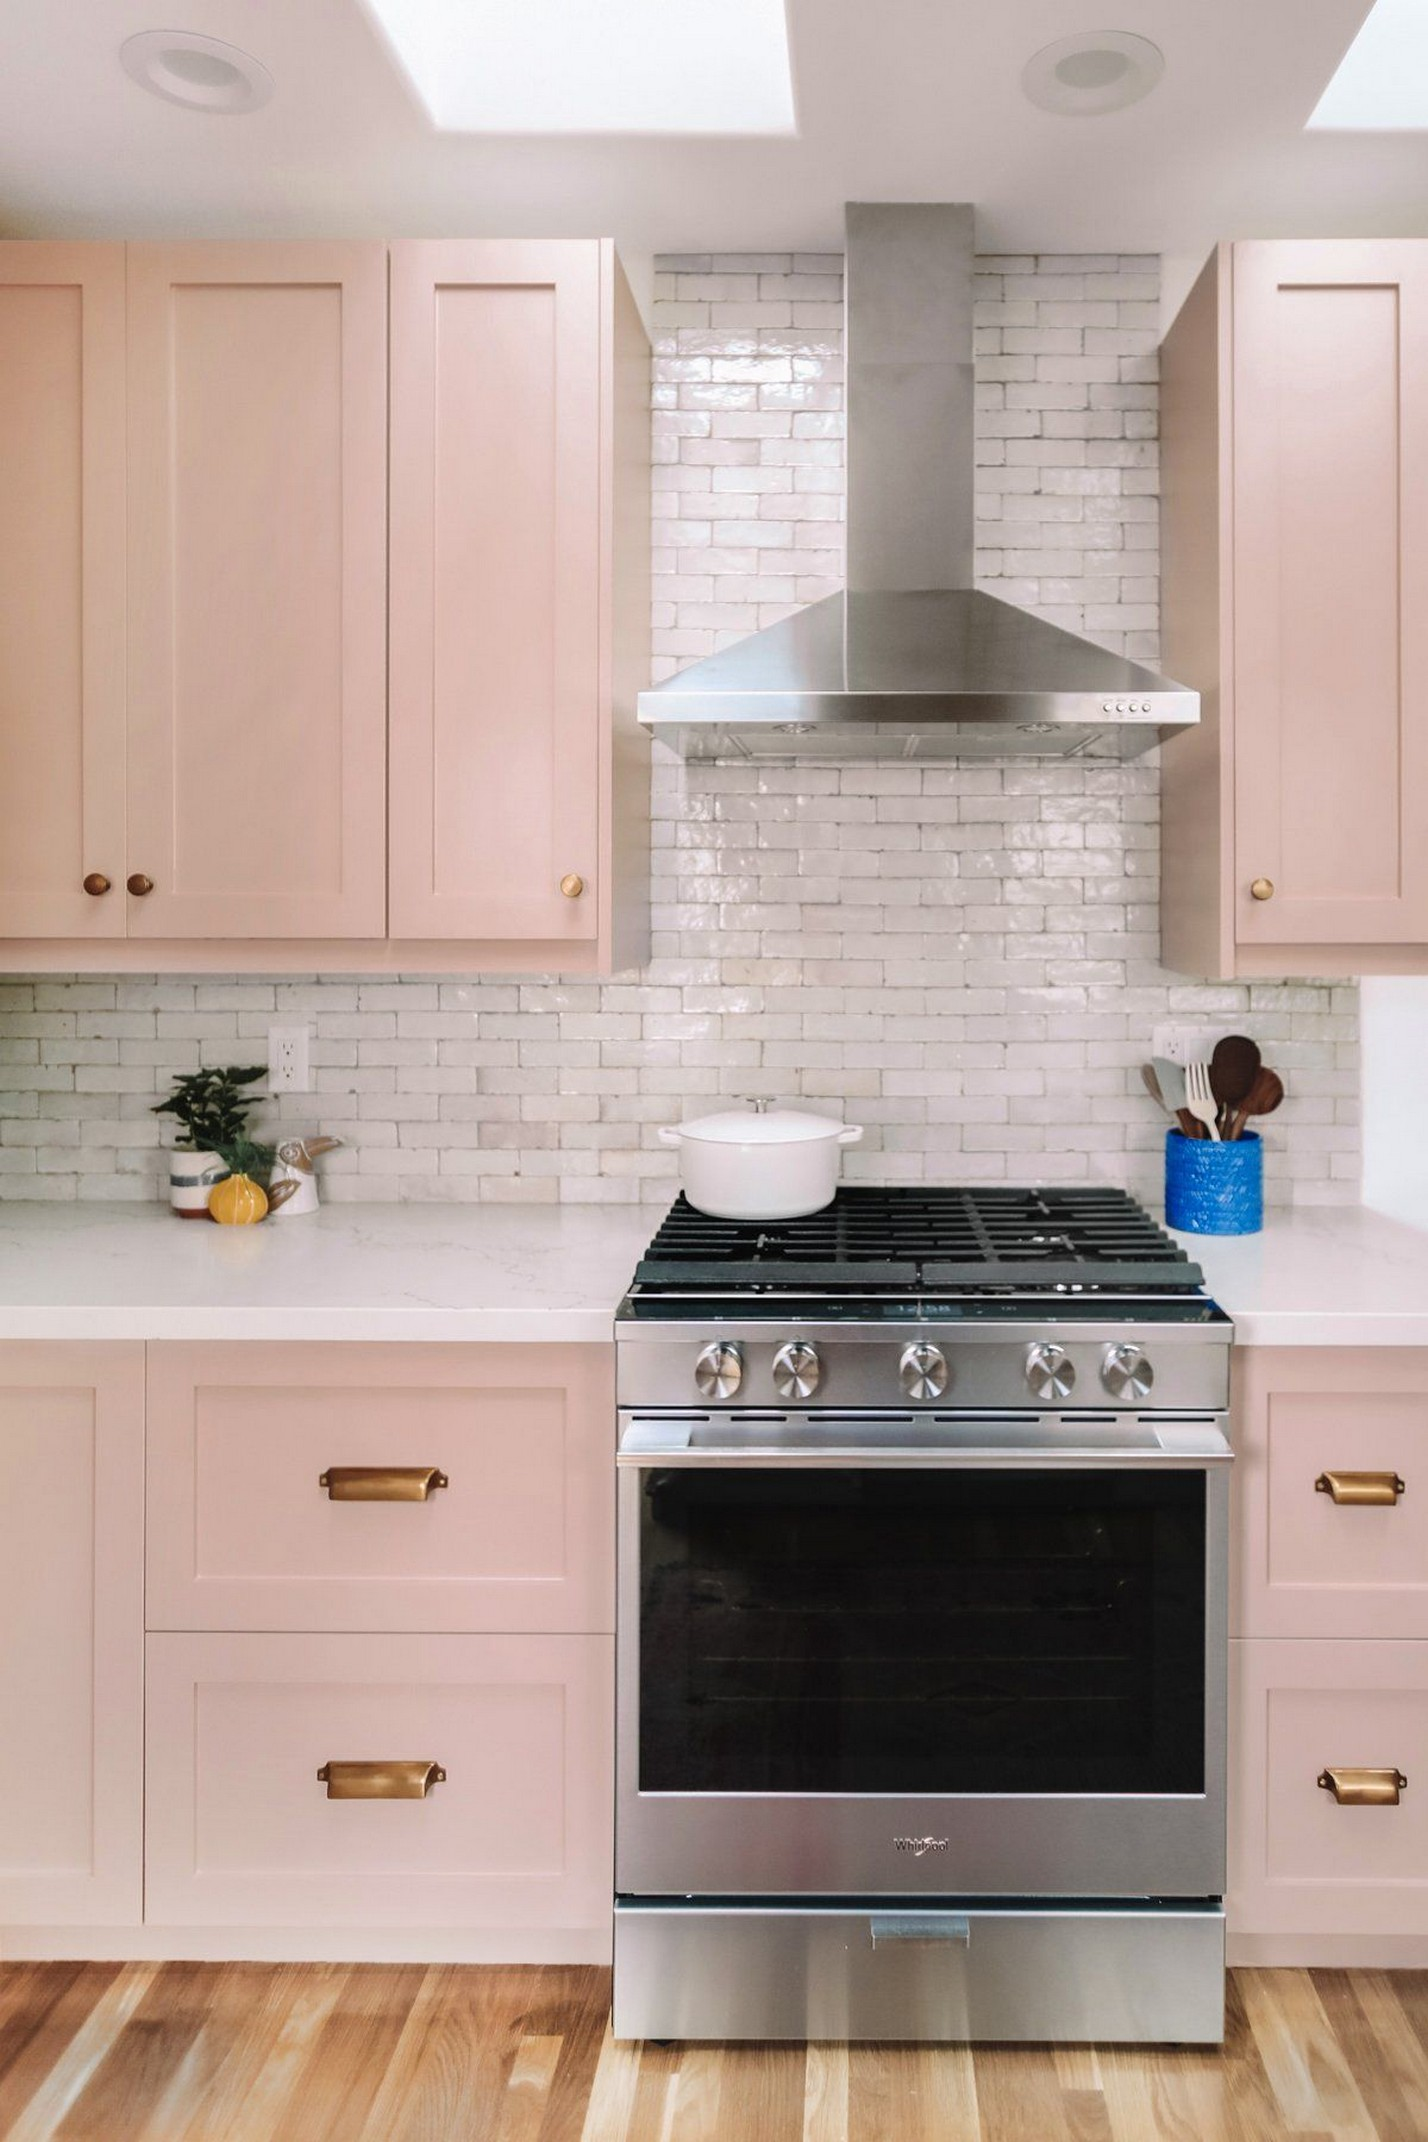 71 Painted Kitchen Cabinets Ideas For Home Decor 56